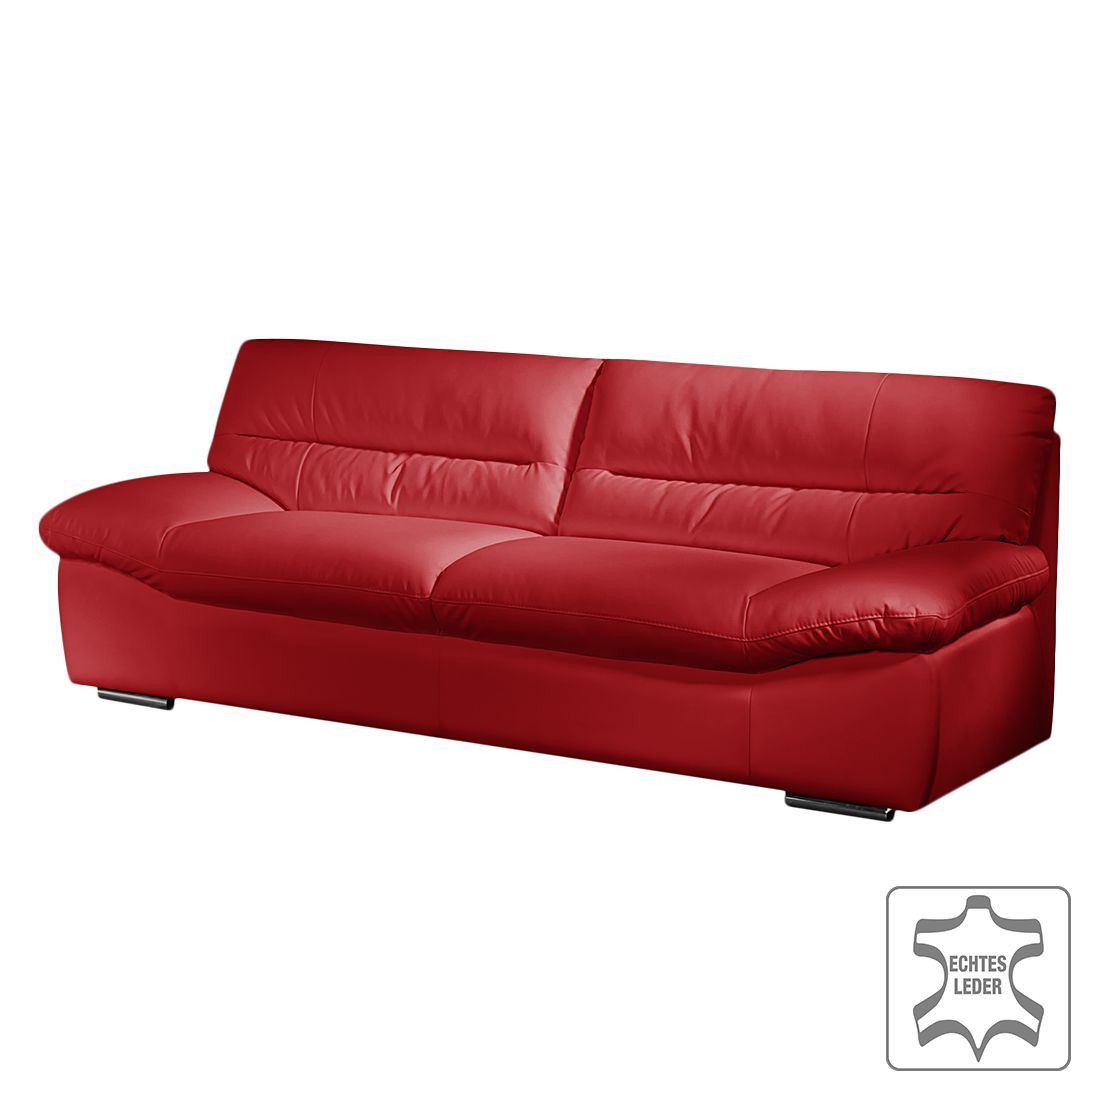 sofa doug 3 sitzer echtleder rot cotta g nstig bestellen. Black Bedroom Furniture Sets. Home Design Ideas